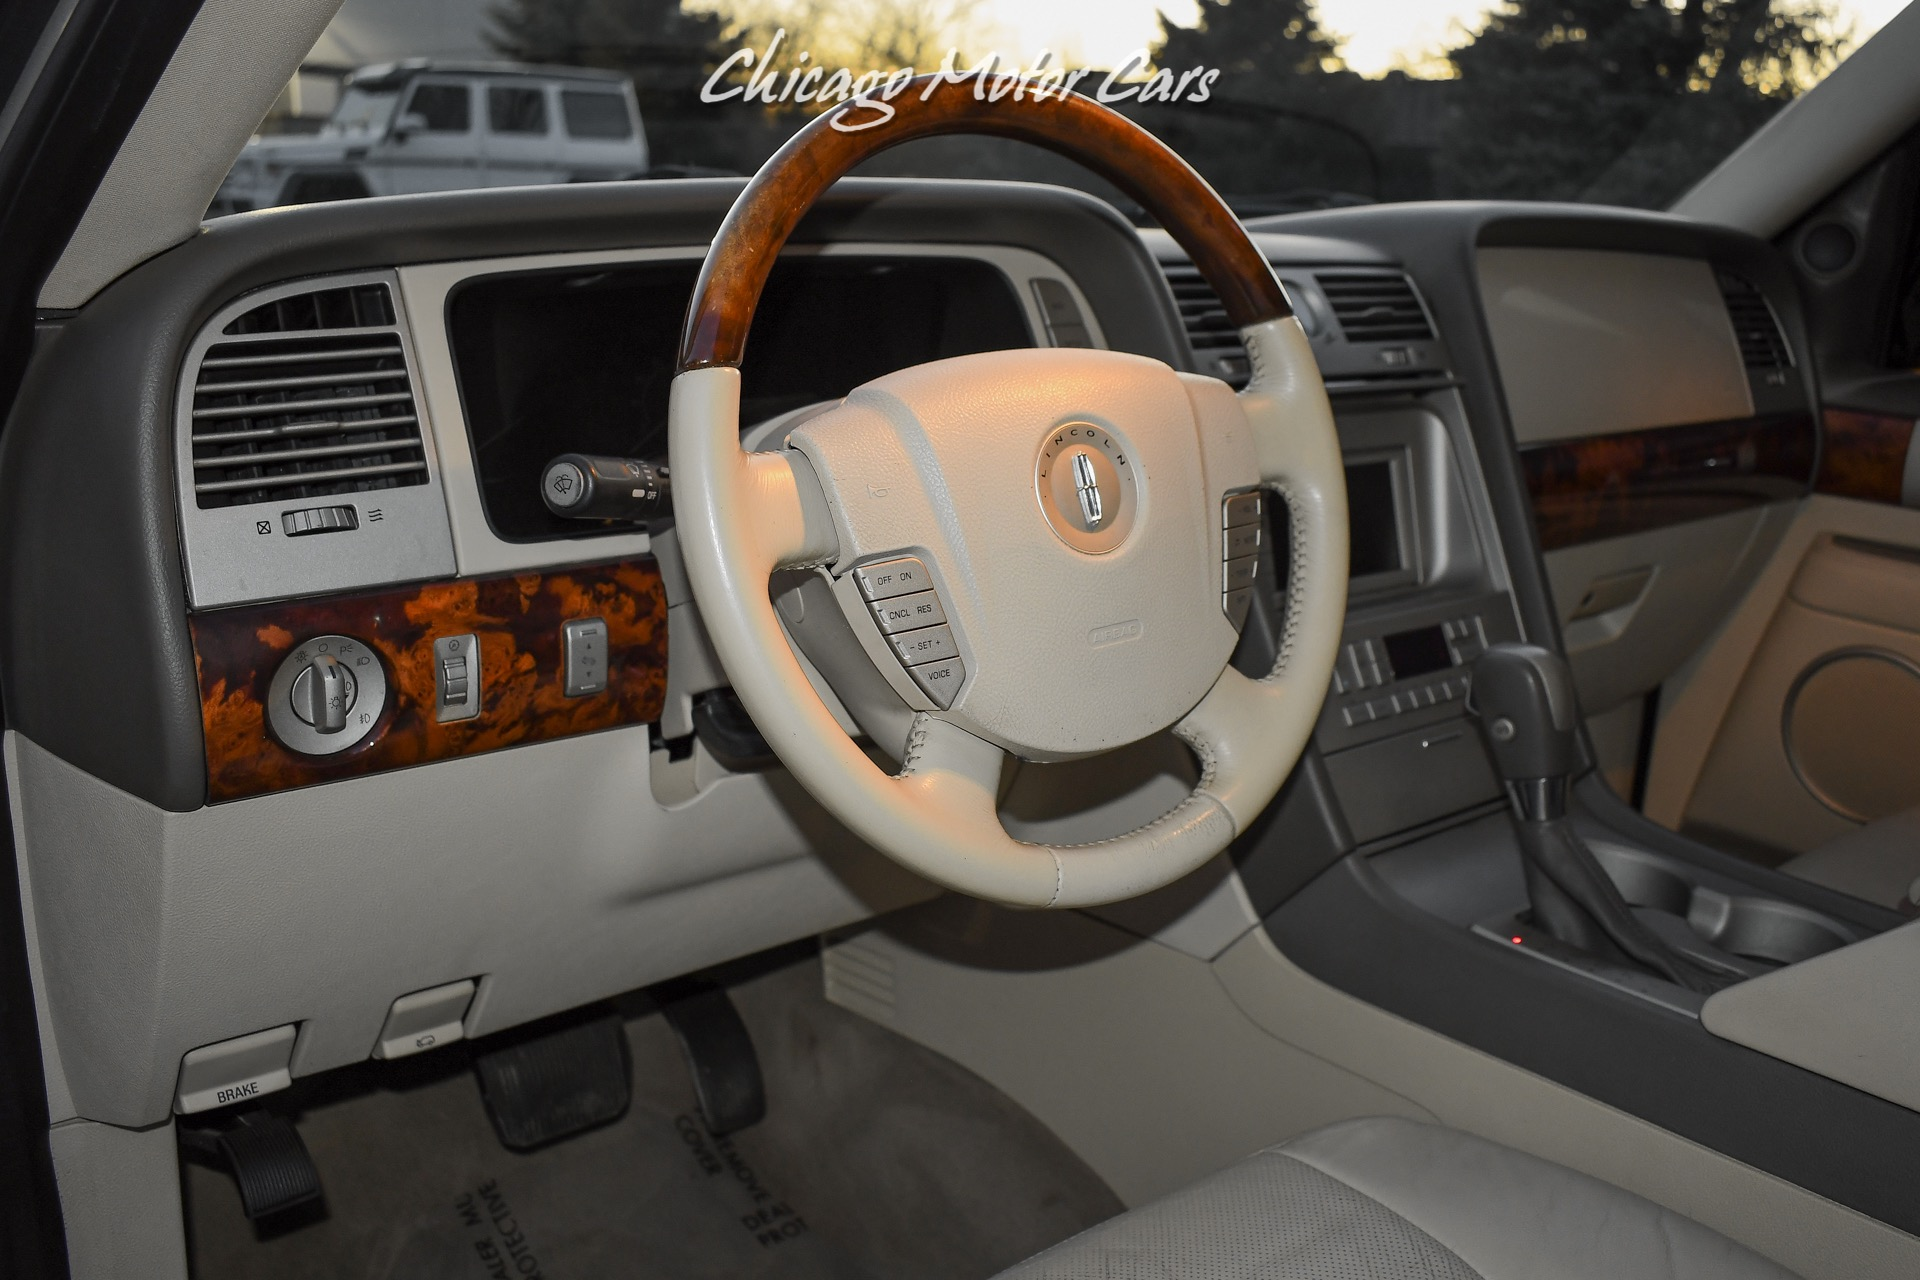 Used-2004-Lincoln-Navigator-Luxury-Rear-Entertainment-8-Passenger-Seating-Loaded